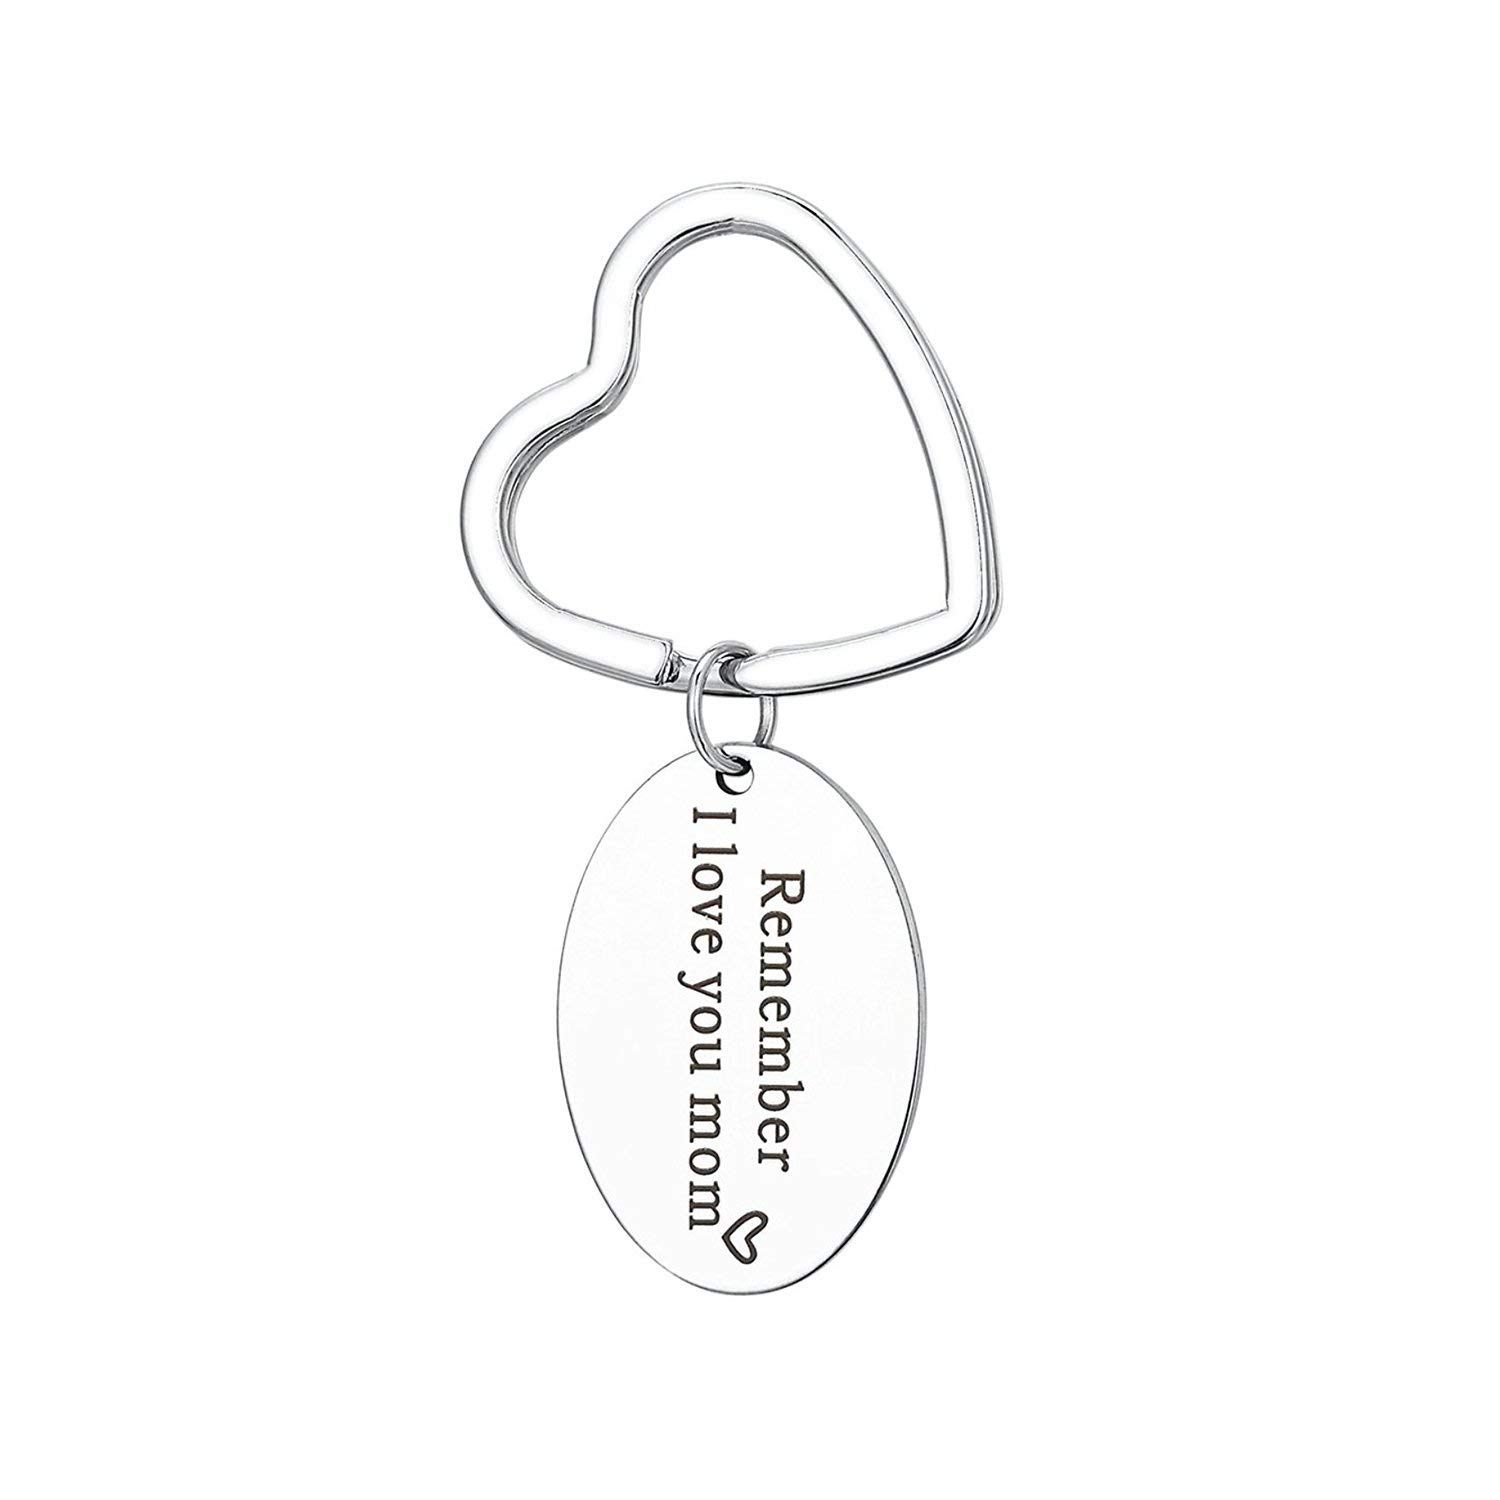 Mom gifts Remeber I Love You Mom Keychain Mom Daughter Jewelry Gify Mother's Day Gifts